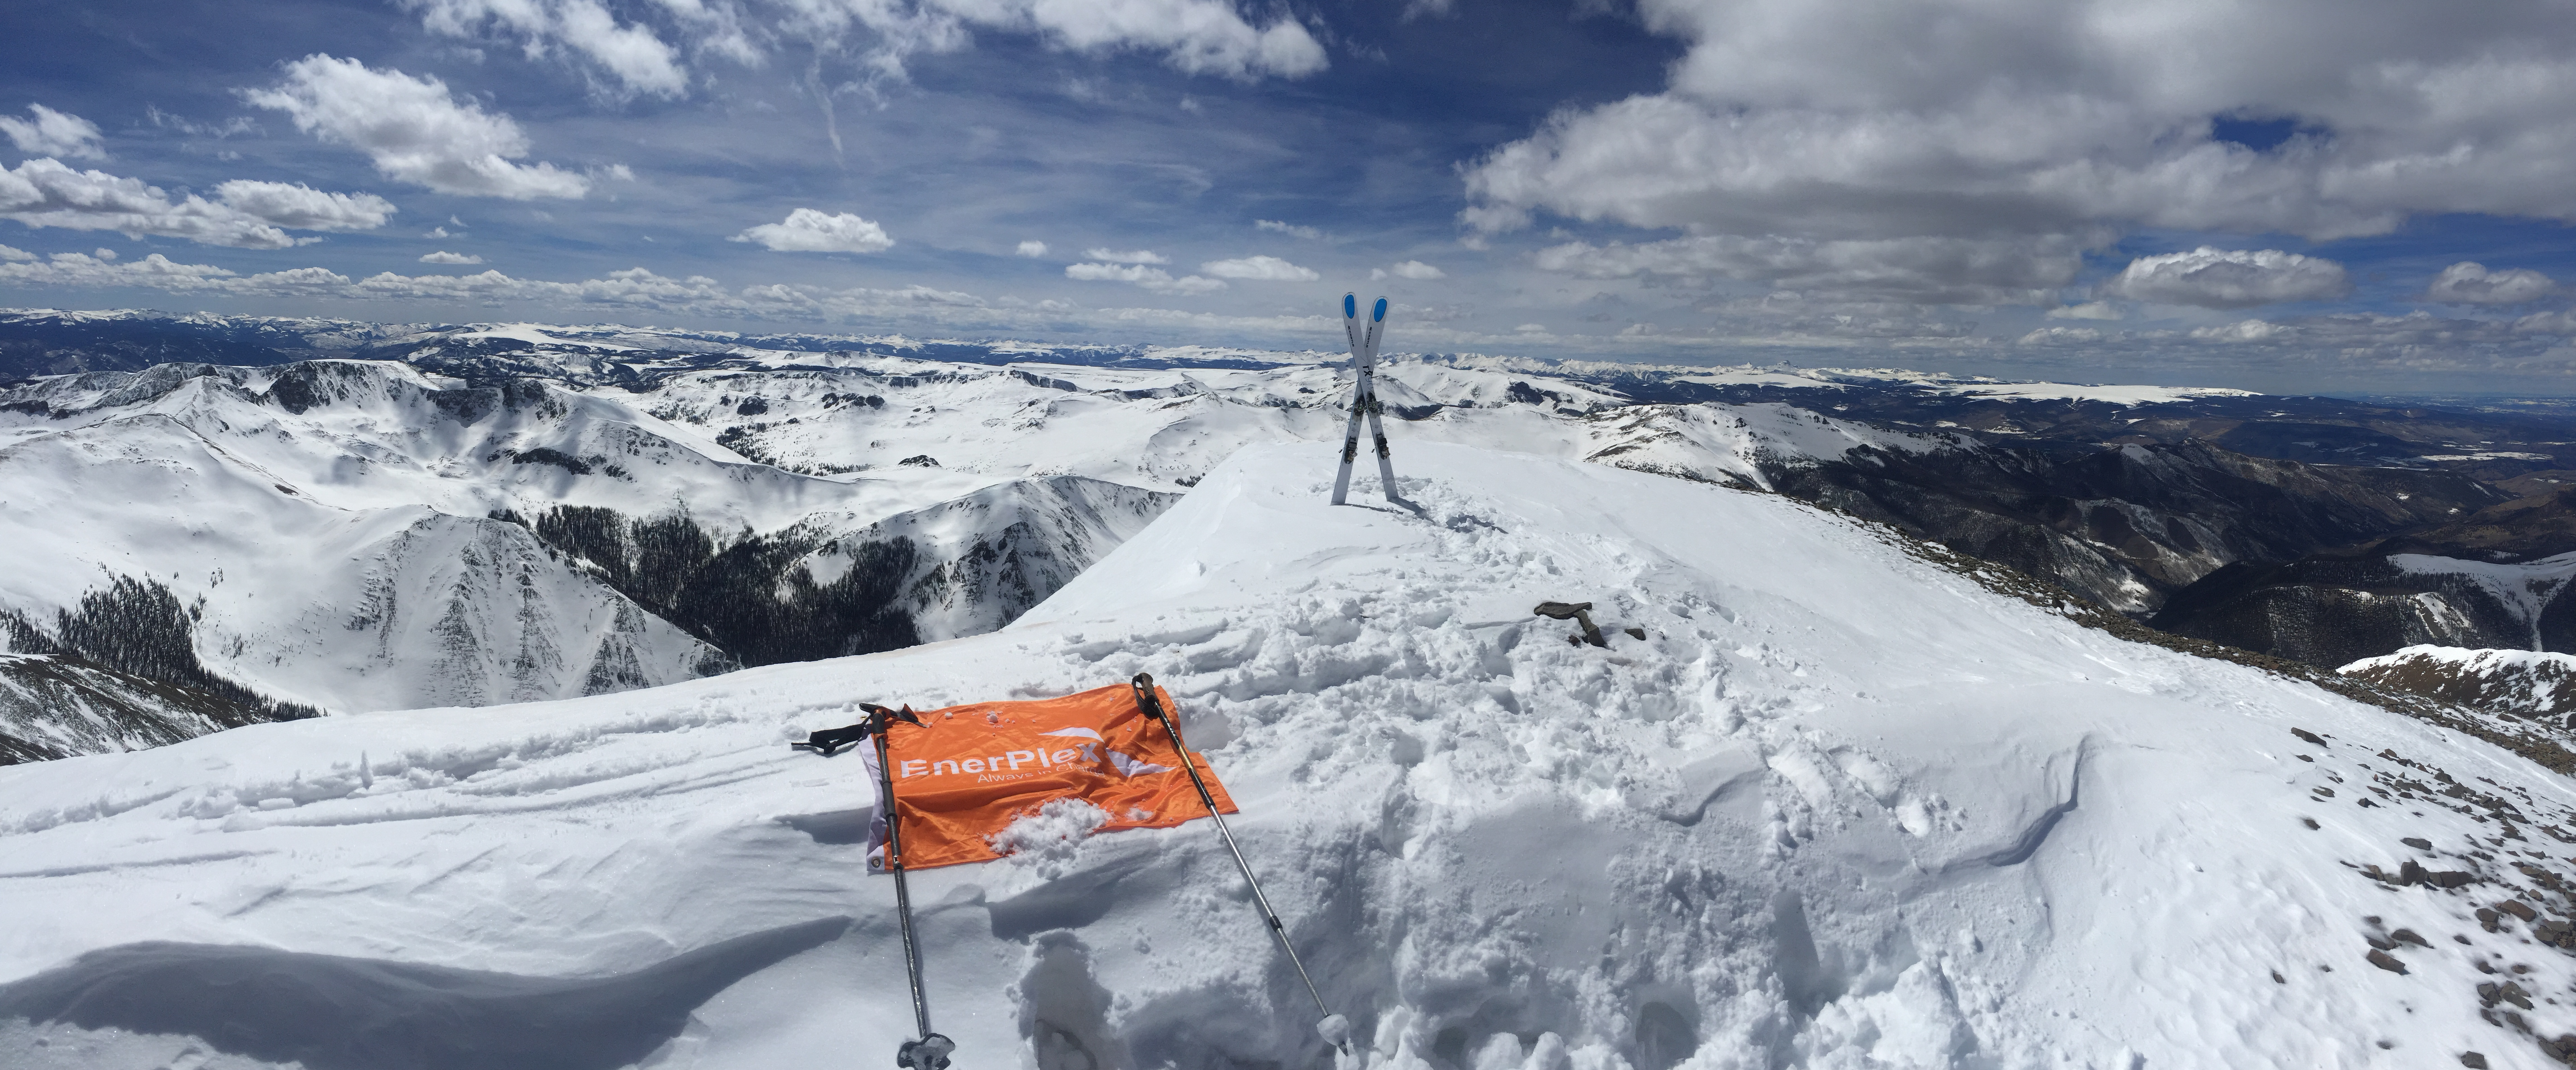 Summit of San Luis 14,014'